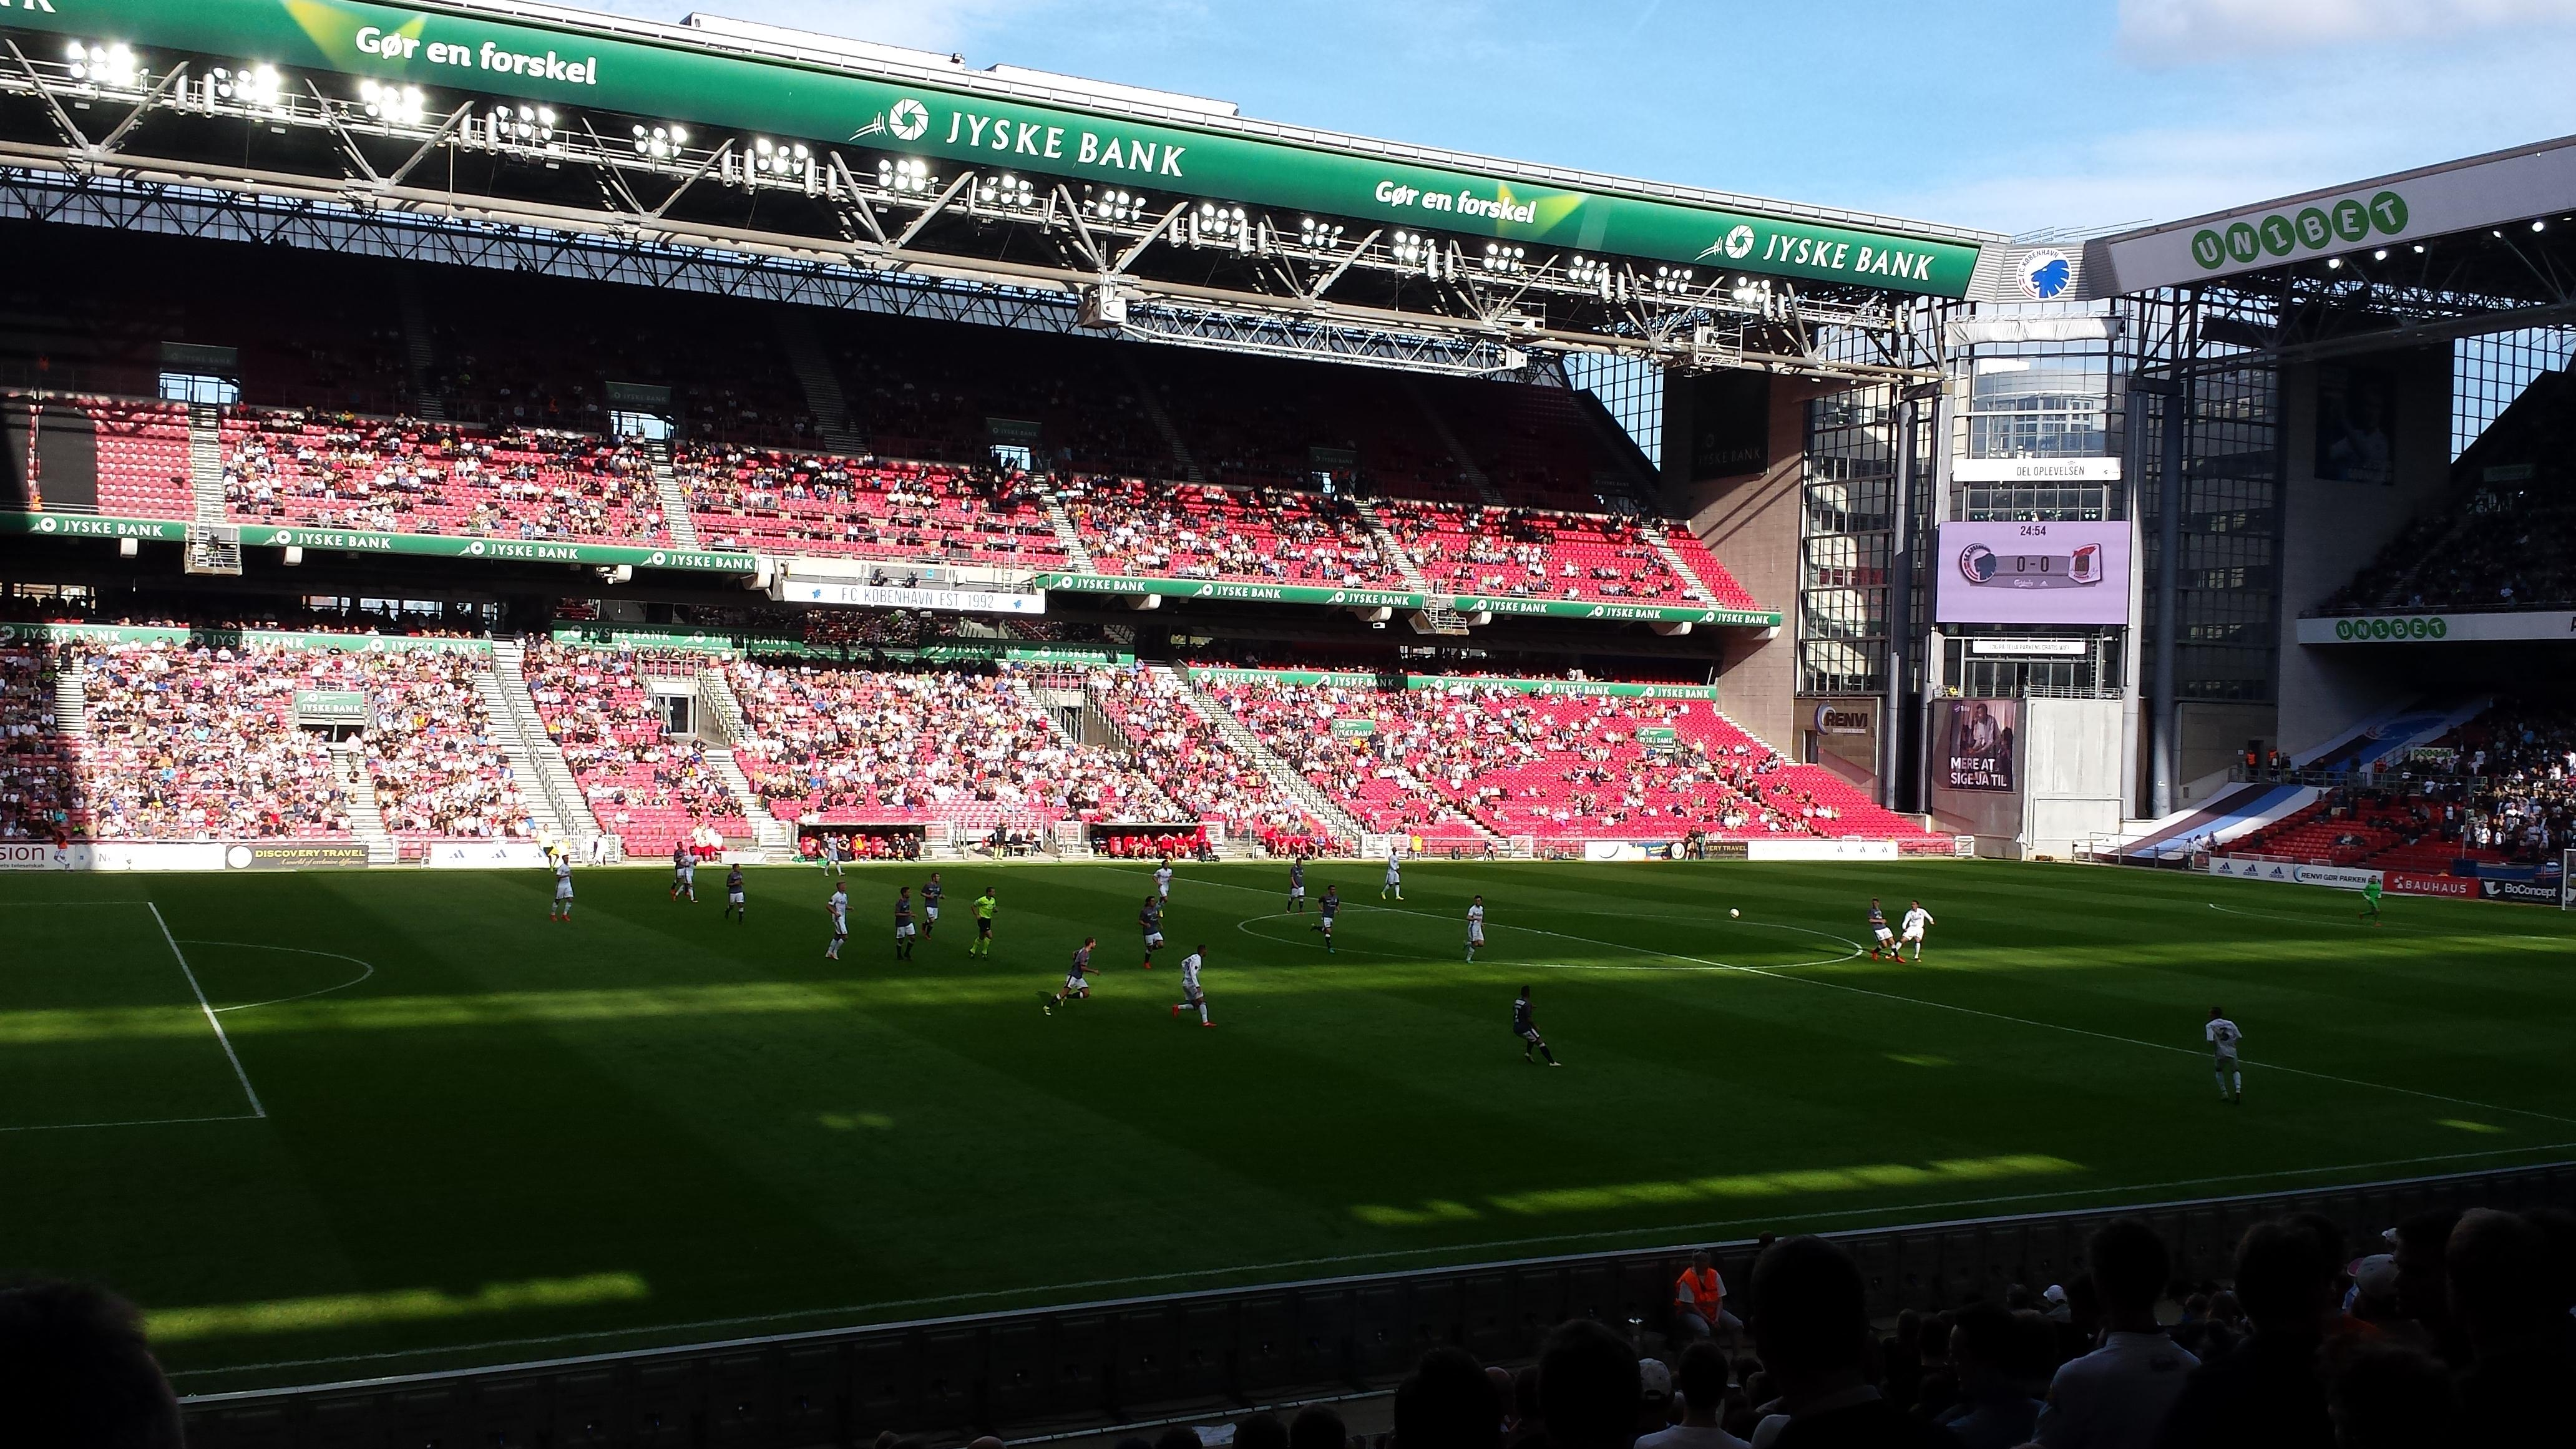 Parken Stadium Section C2 Row 20 Seat 38